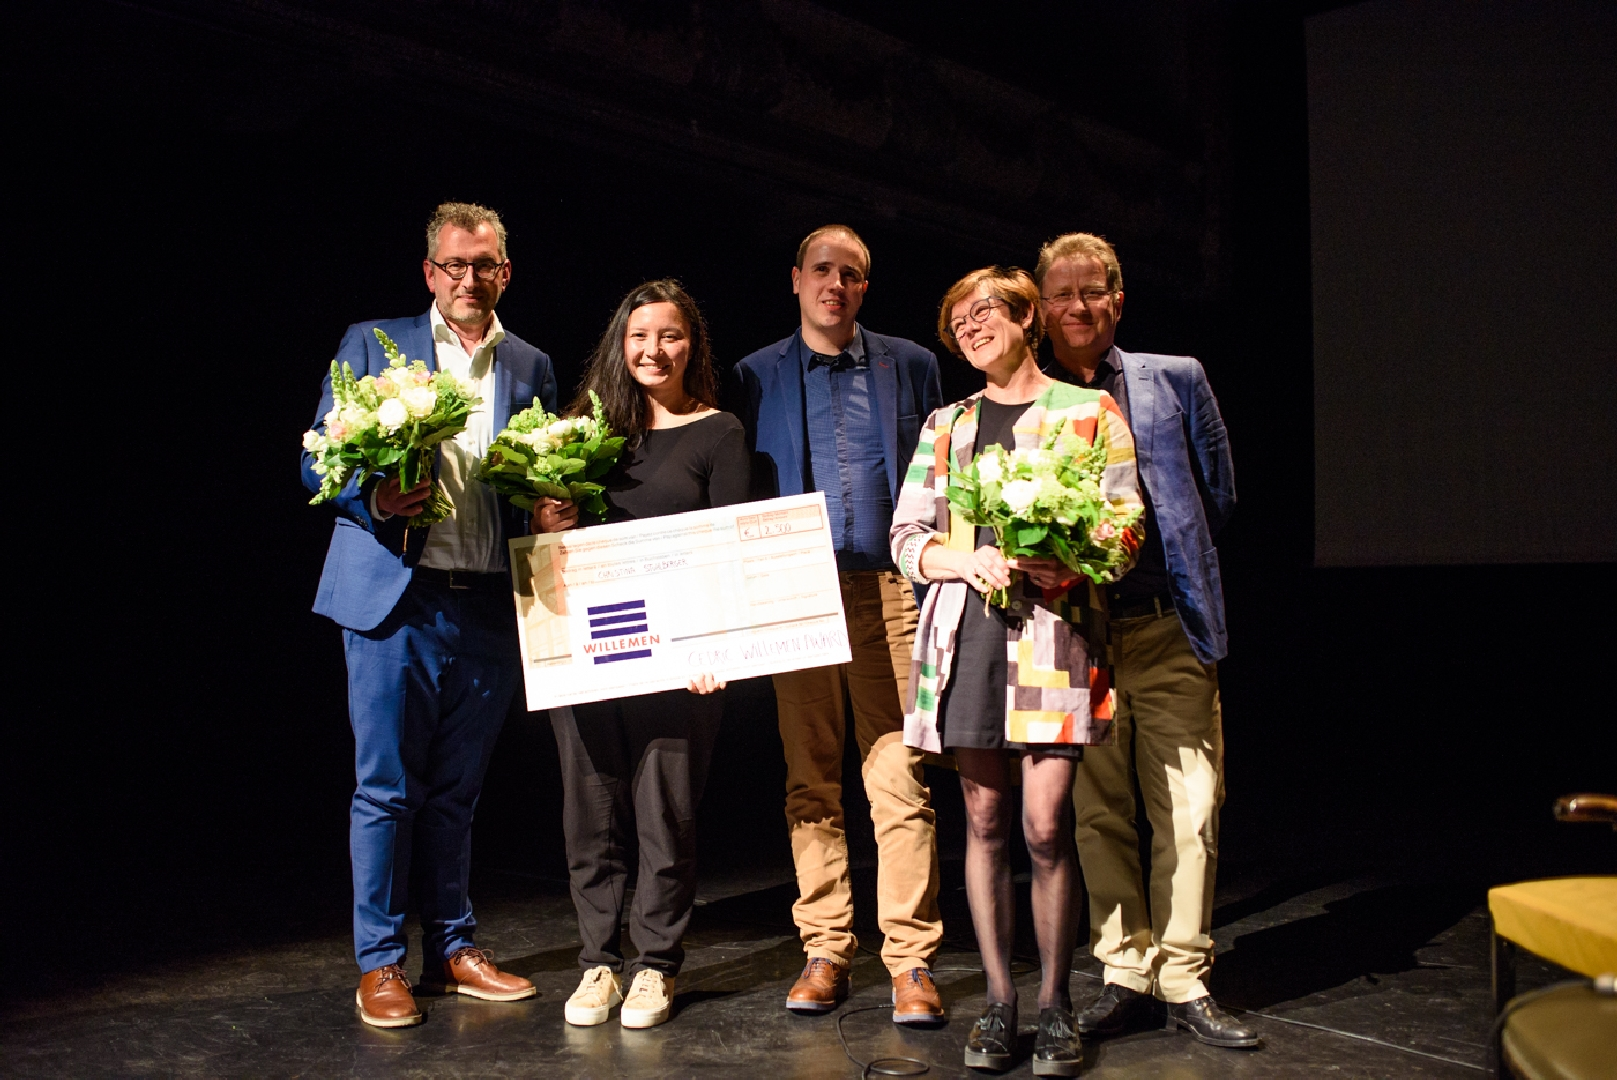 Respect - MVO - Cedric Willemen Award 2017